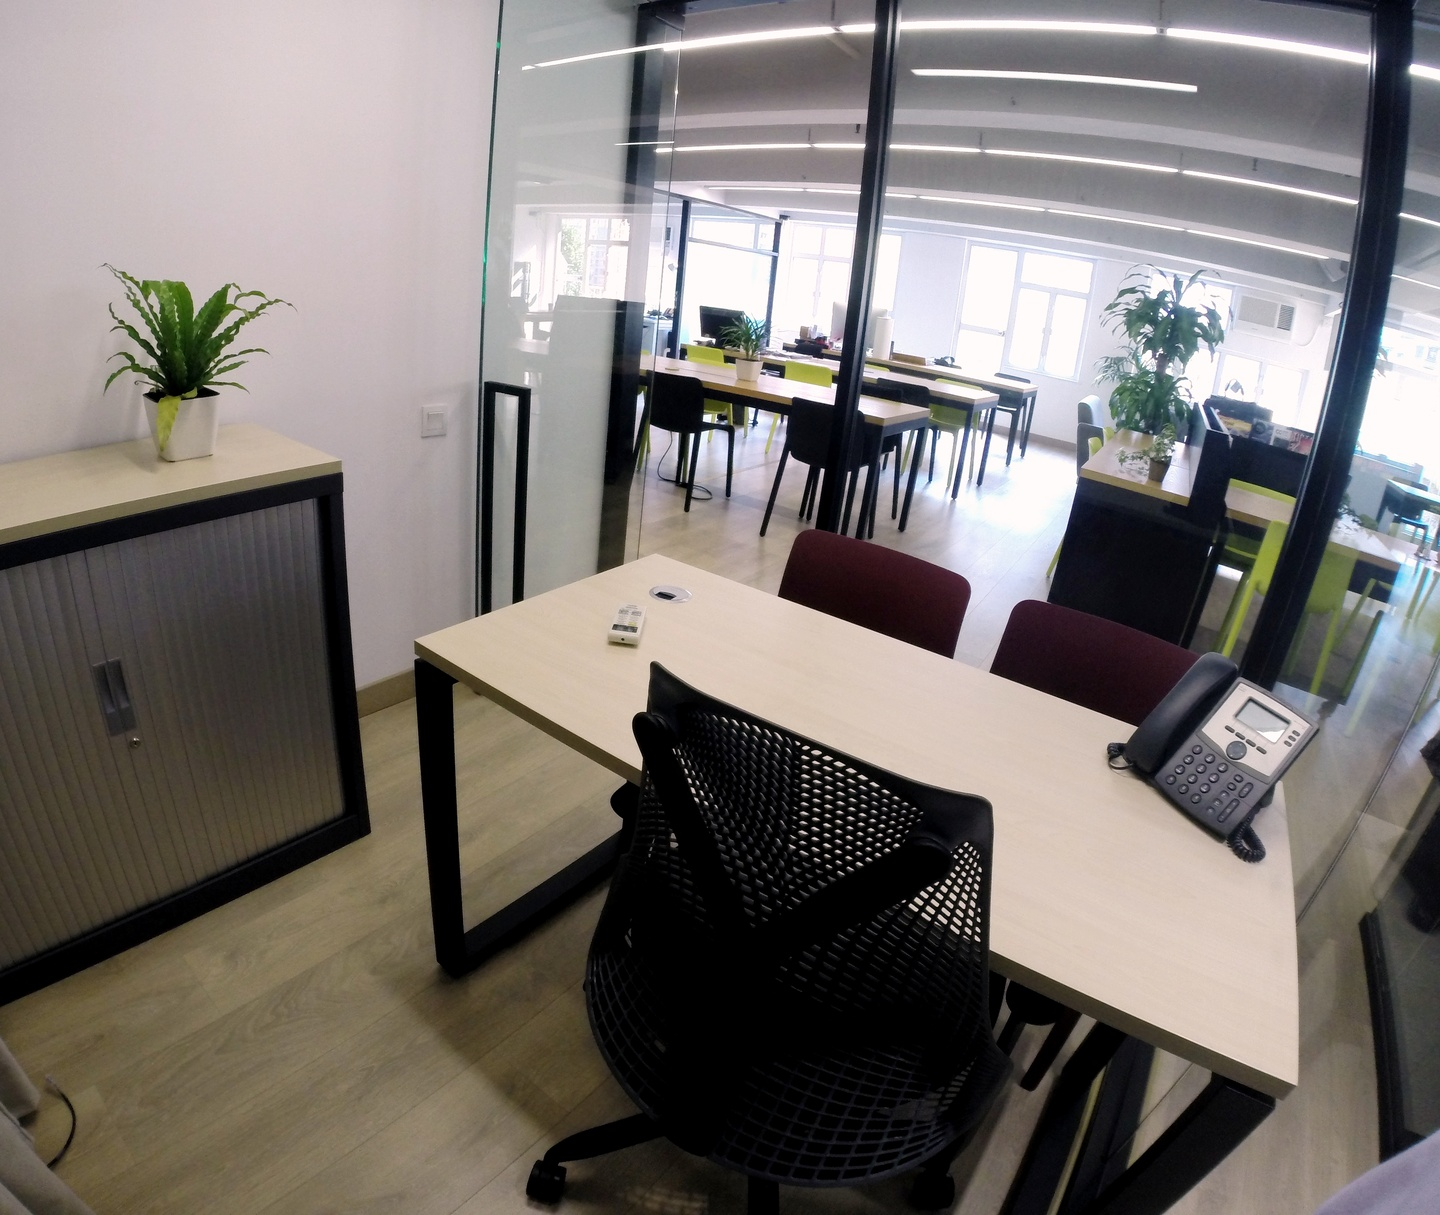 Hong Kong conference rooms Coworking space Wynd Co-Working Space - Private Office 2 image 0